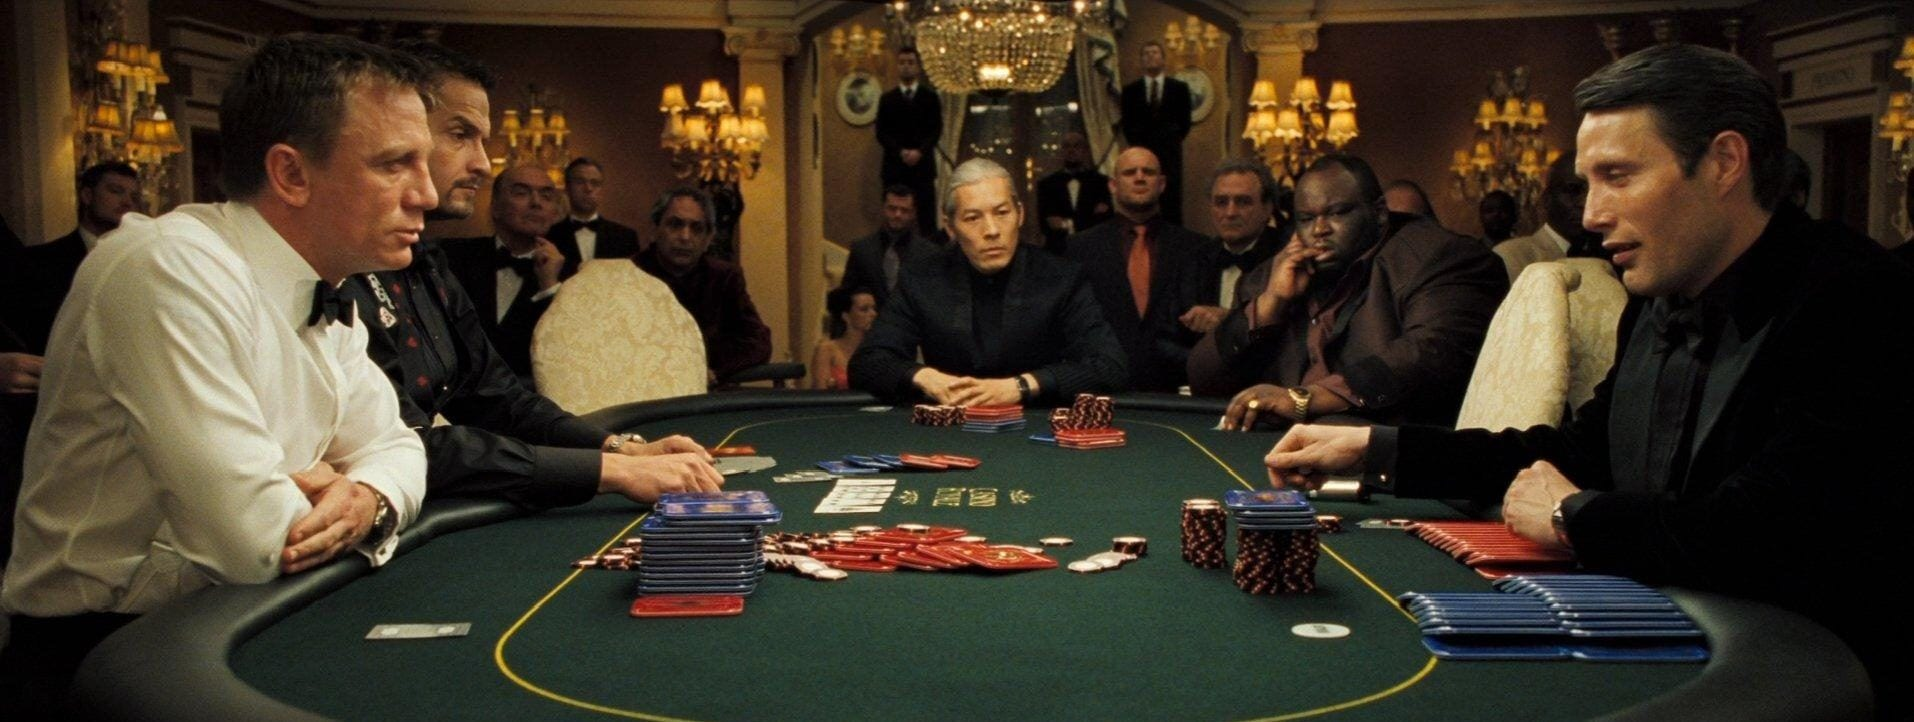 casino royale Bond games